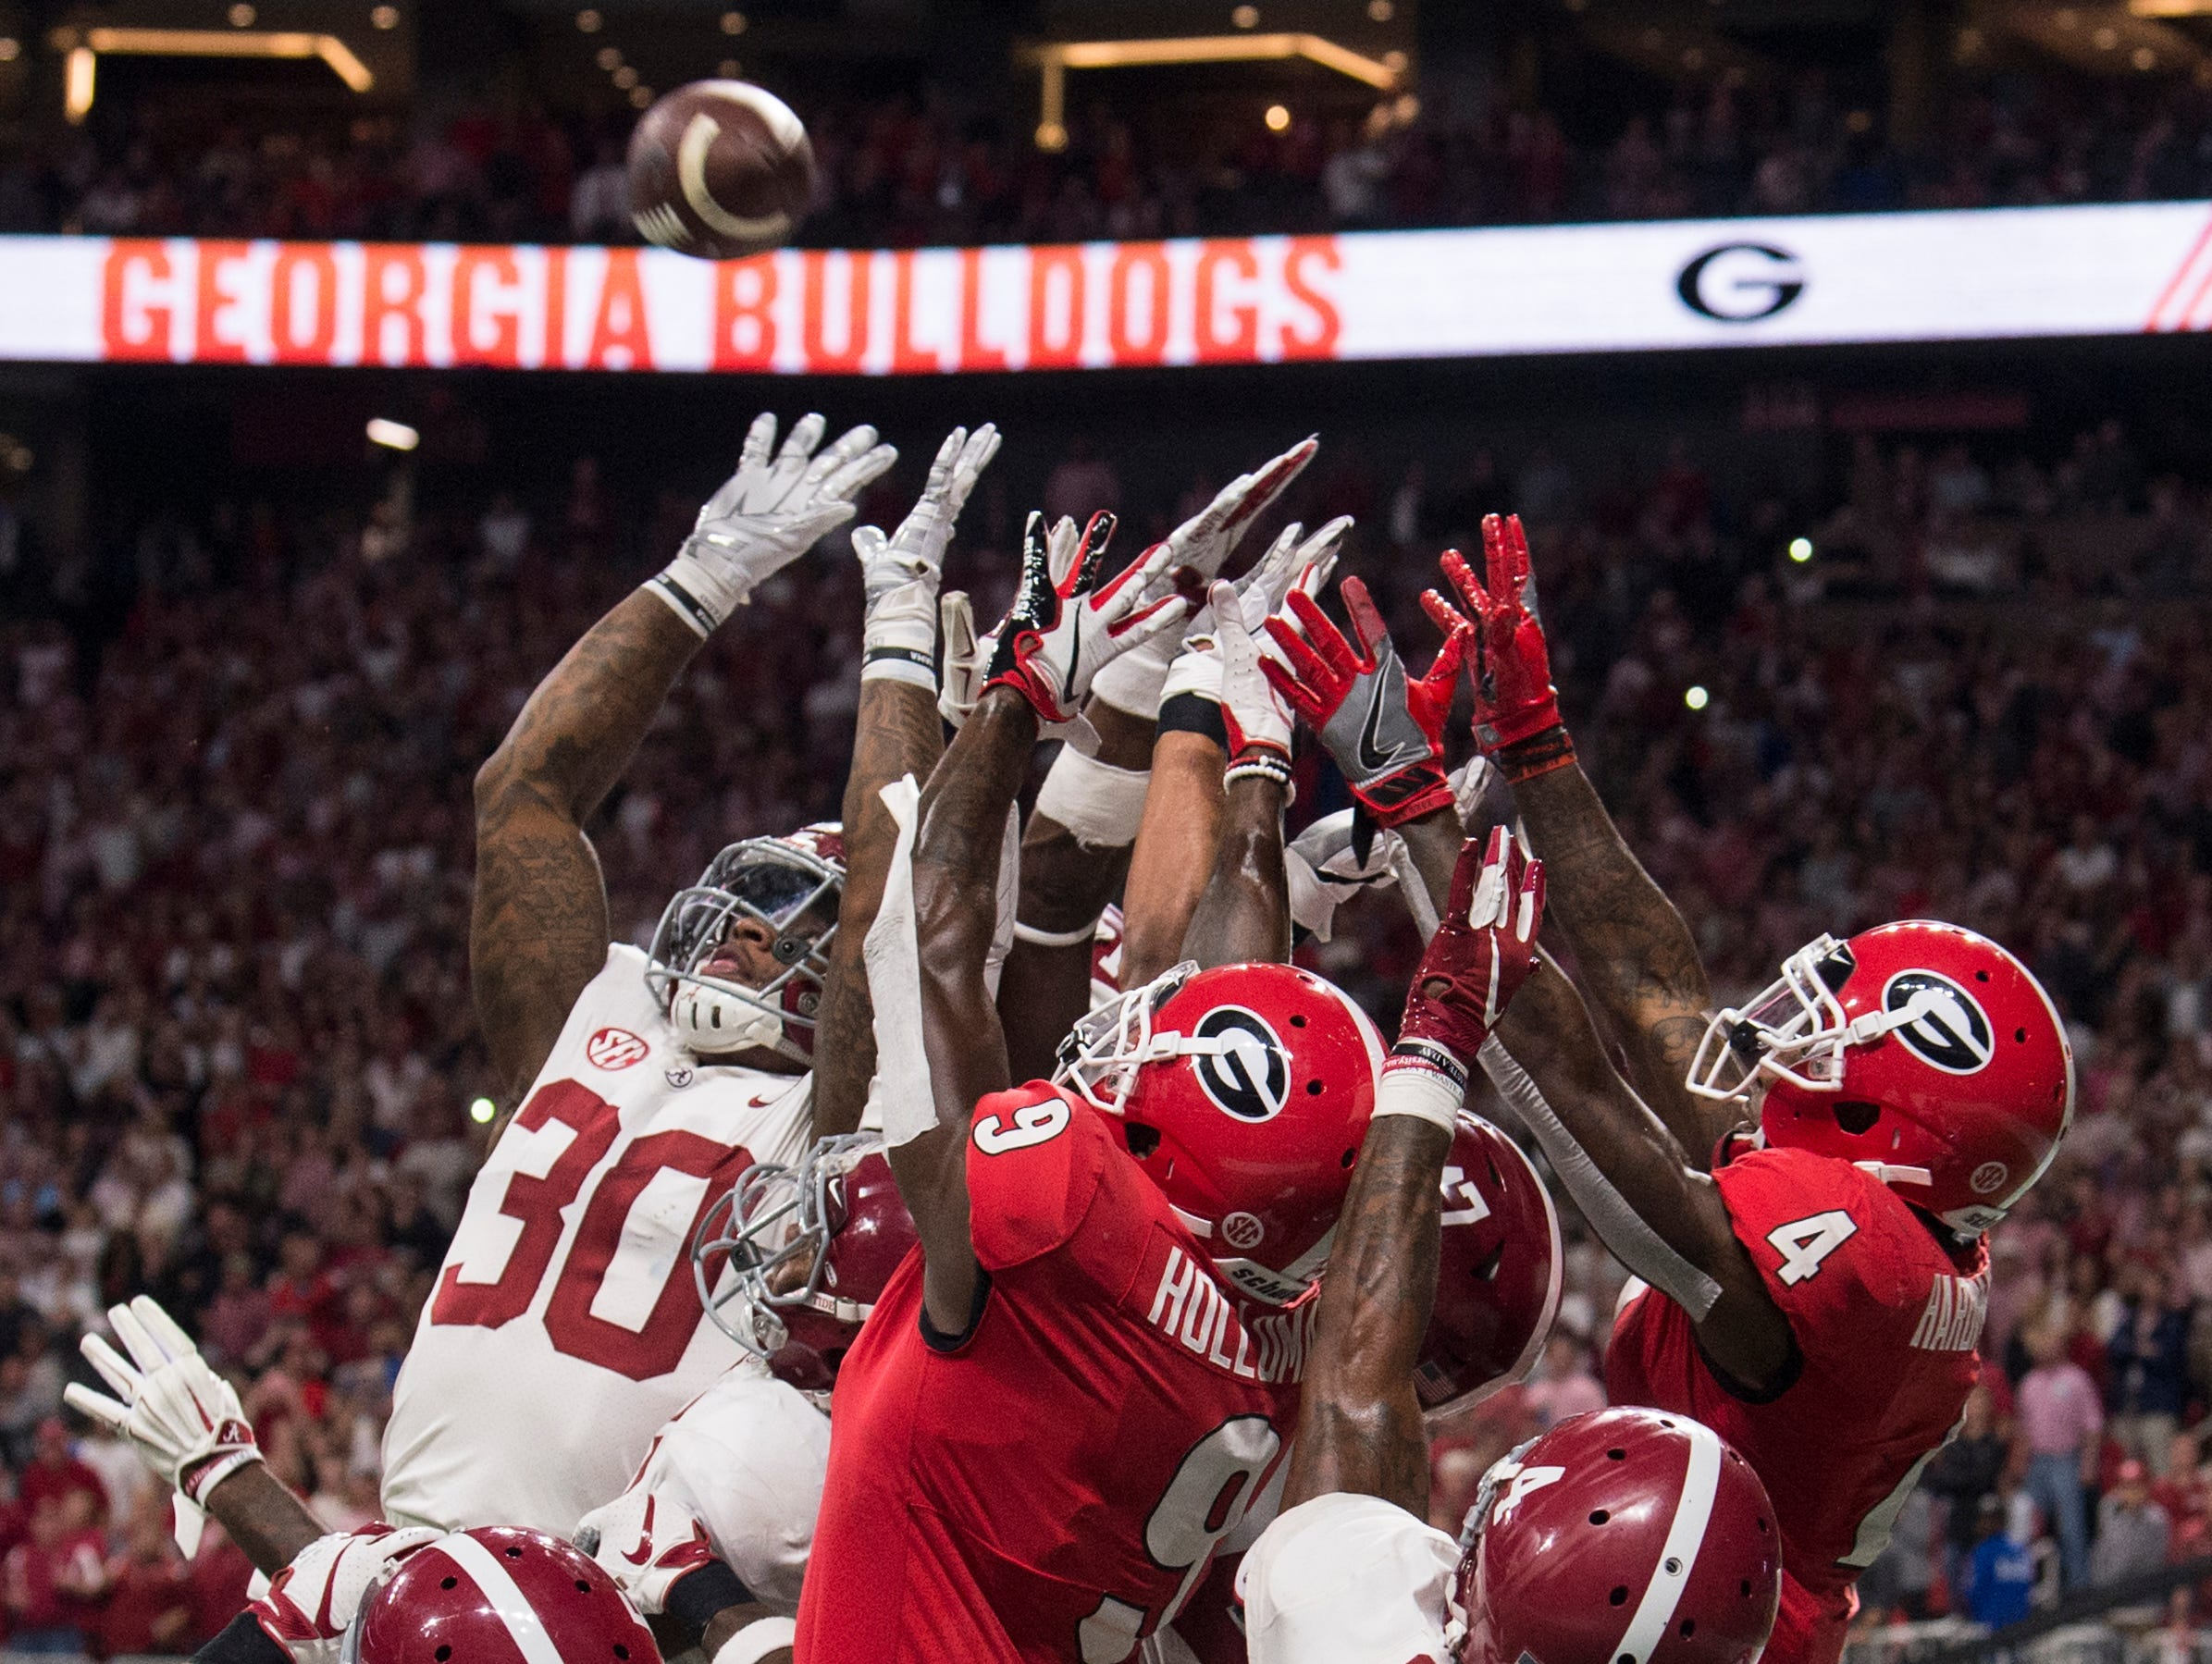 Alabama defenders and Georgia receivers jump for a hail mary pass during the SEC Championship game at Mercedes-Benz Stadium in Atlanta, Ga., on Saturday Dec. 1, 2018. Alabama defeated Georgia 35-28.